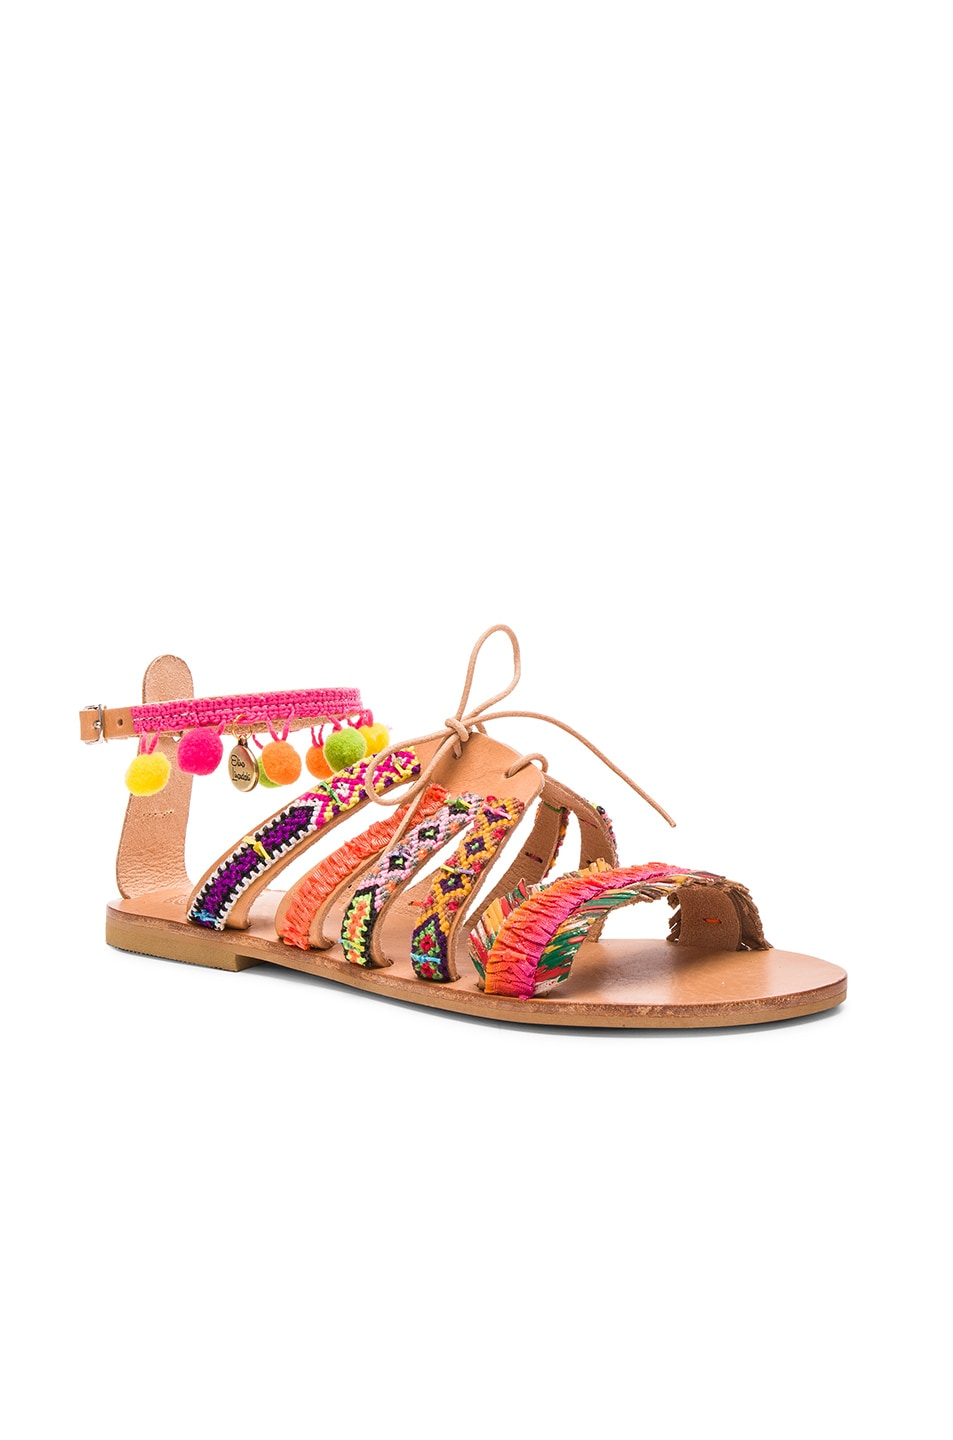 Image 3 of Elina Linardaki Leather Hula Hoop Sandals in Multi